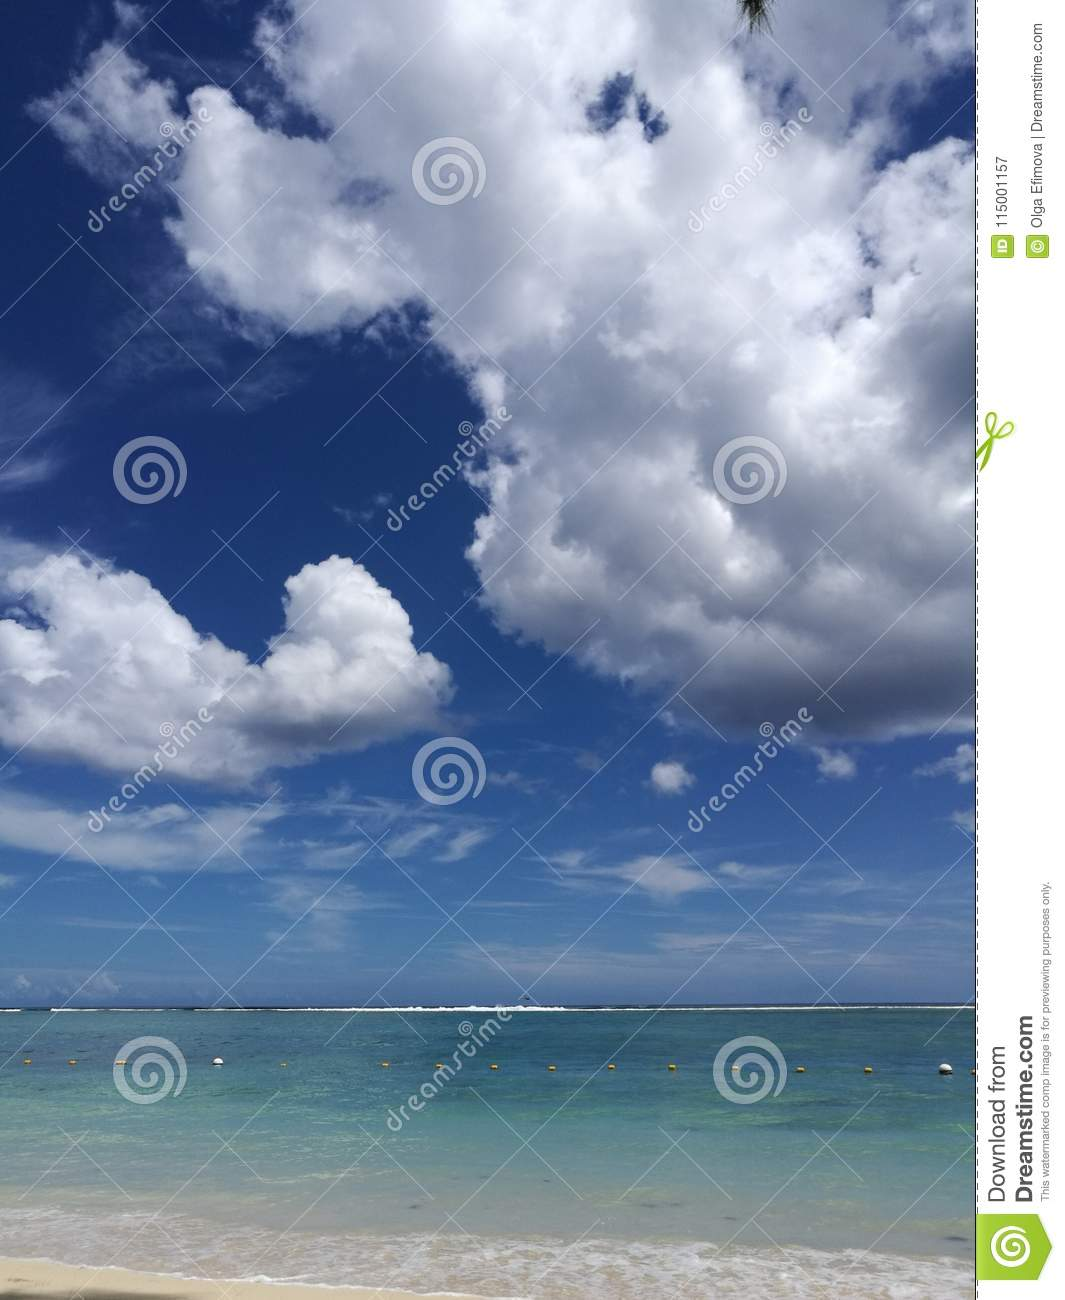 Beautiful ocean view with torquise water and dramatic clouds on sky